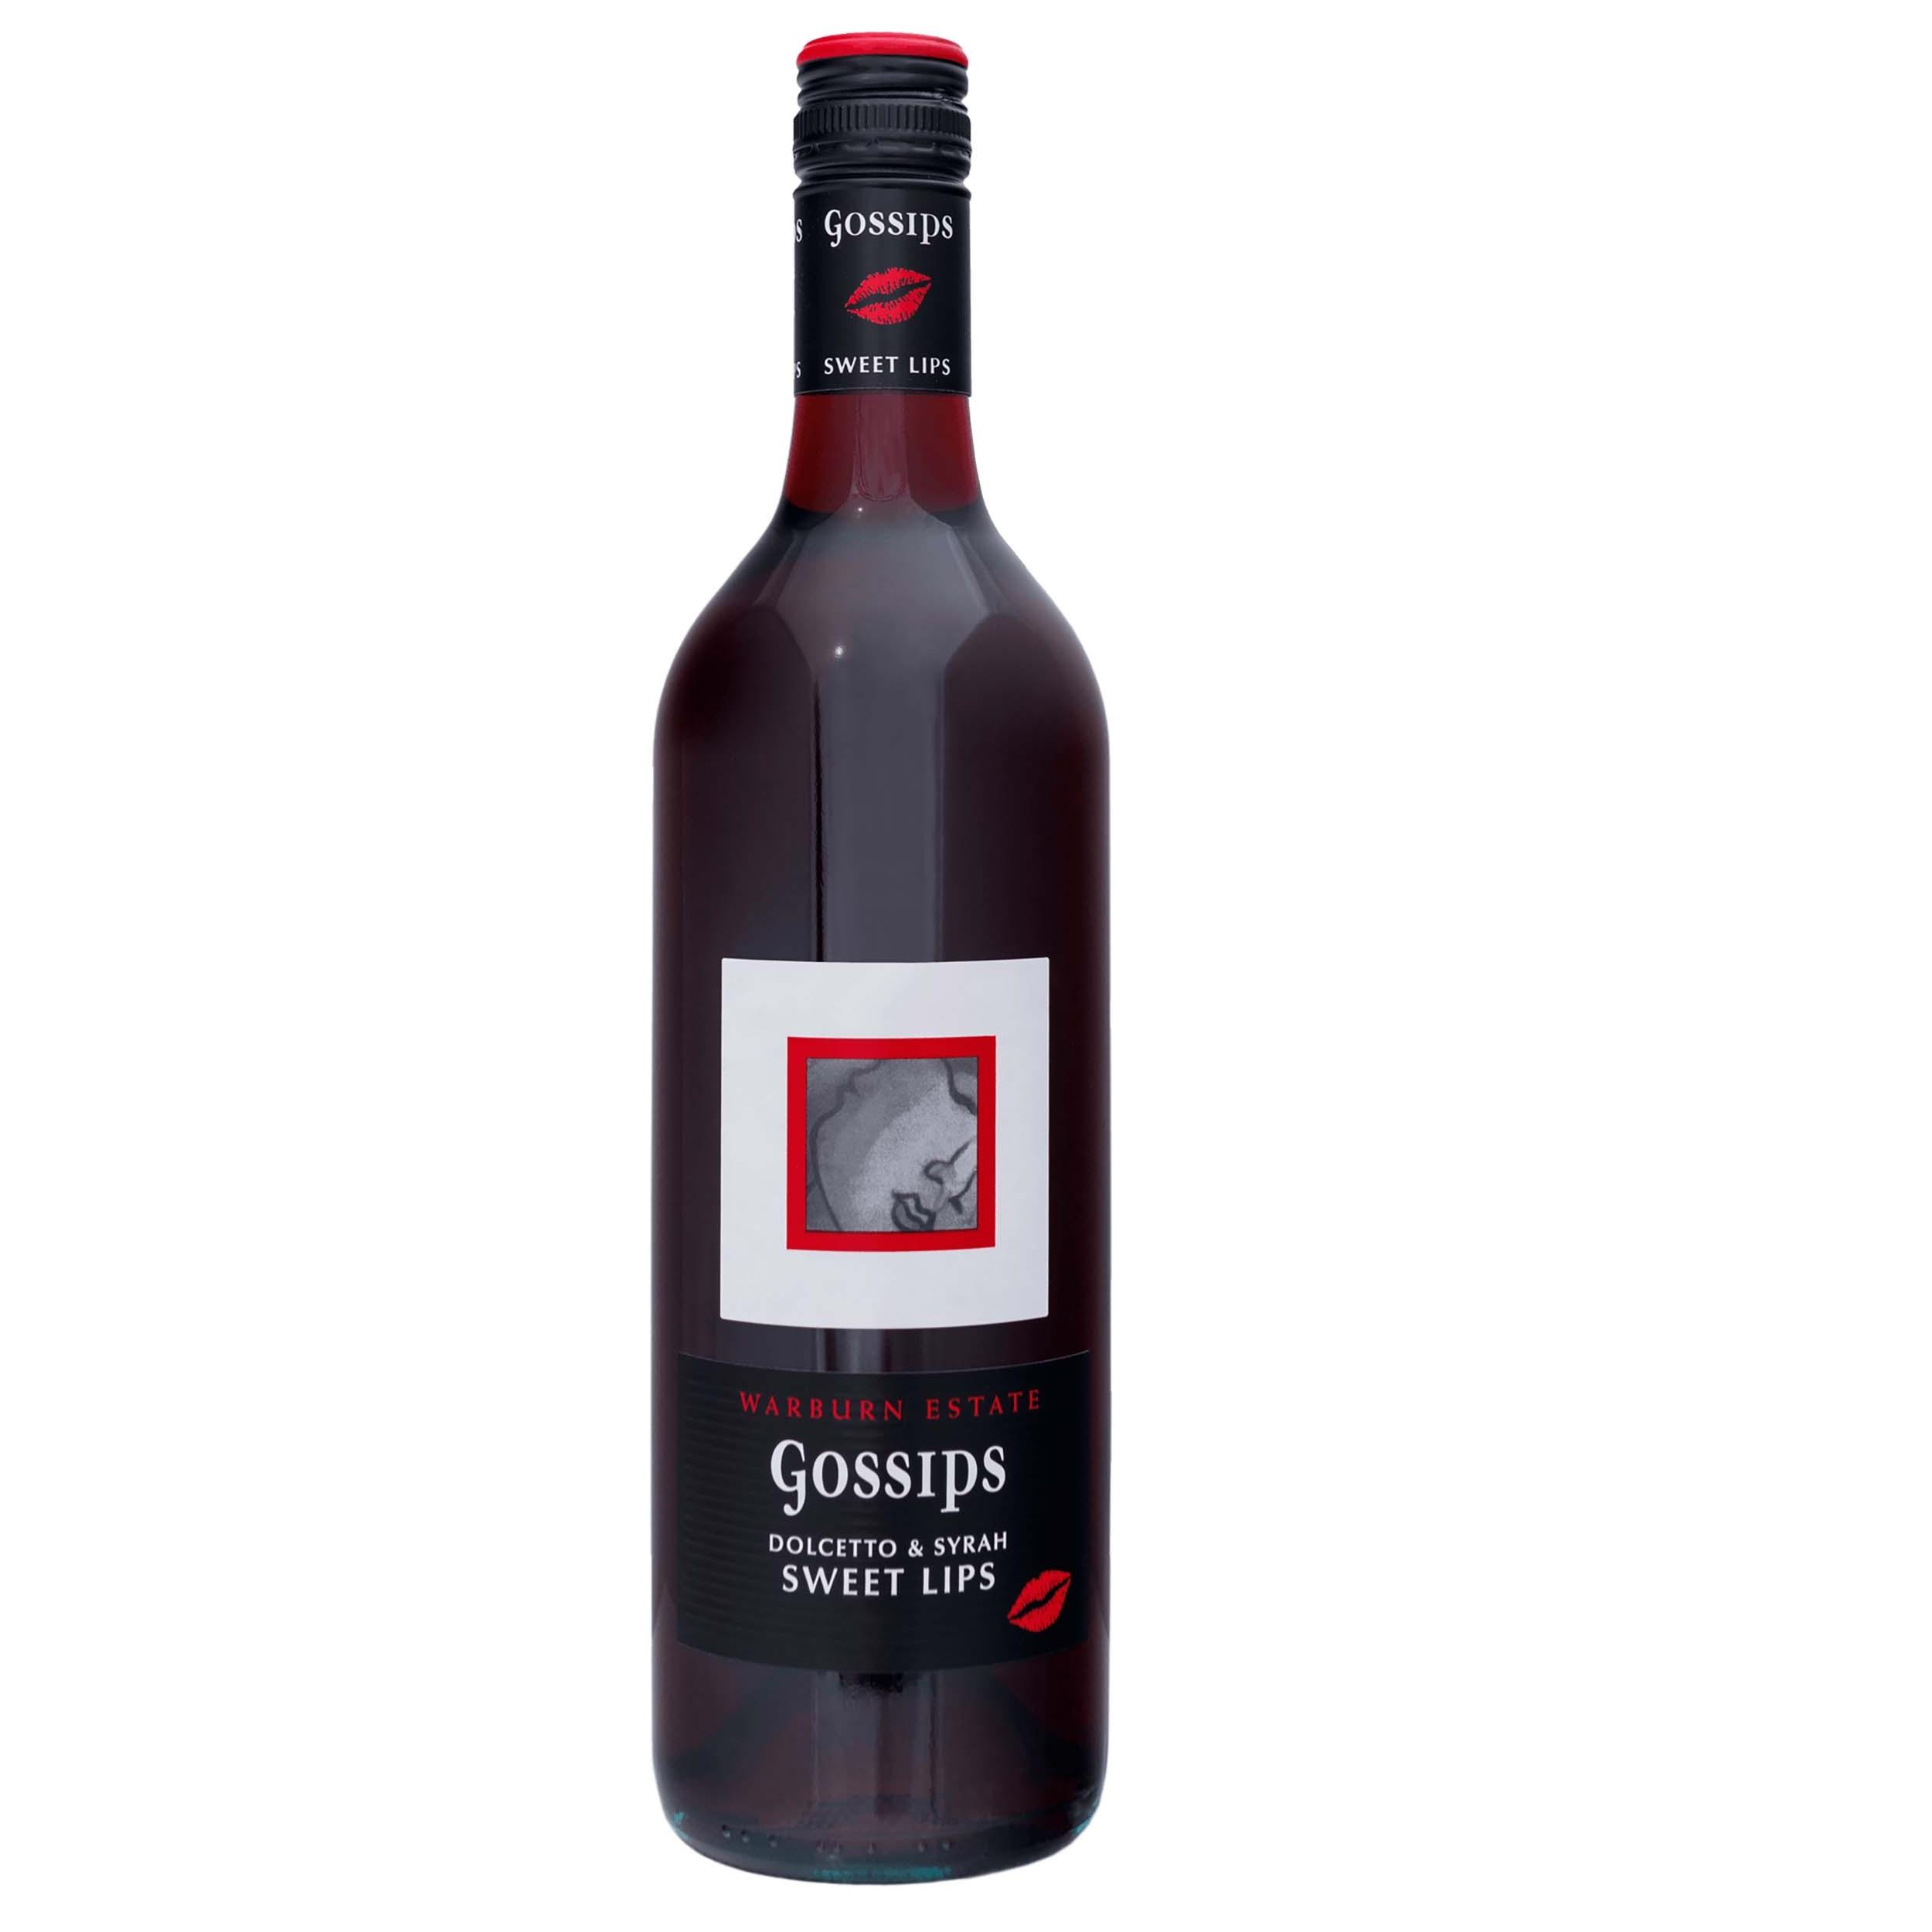 Top Value Australian Red Wine available for Export